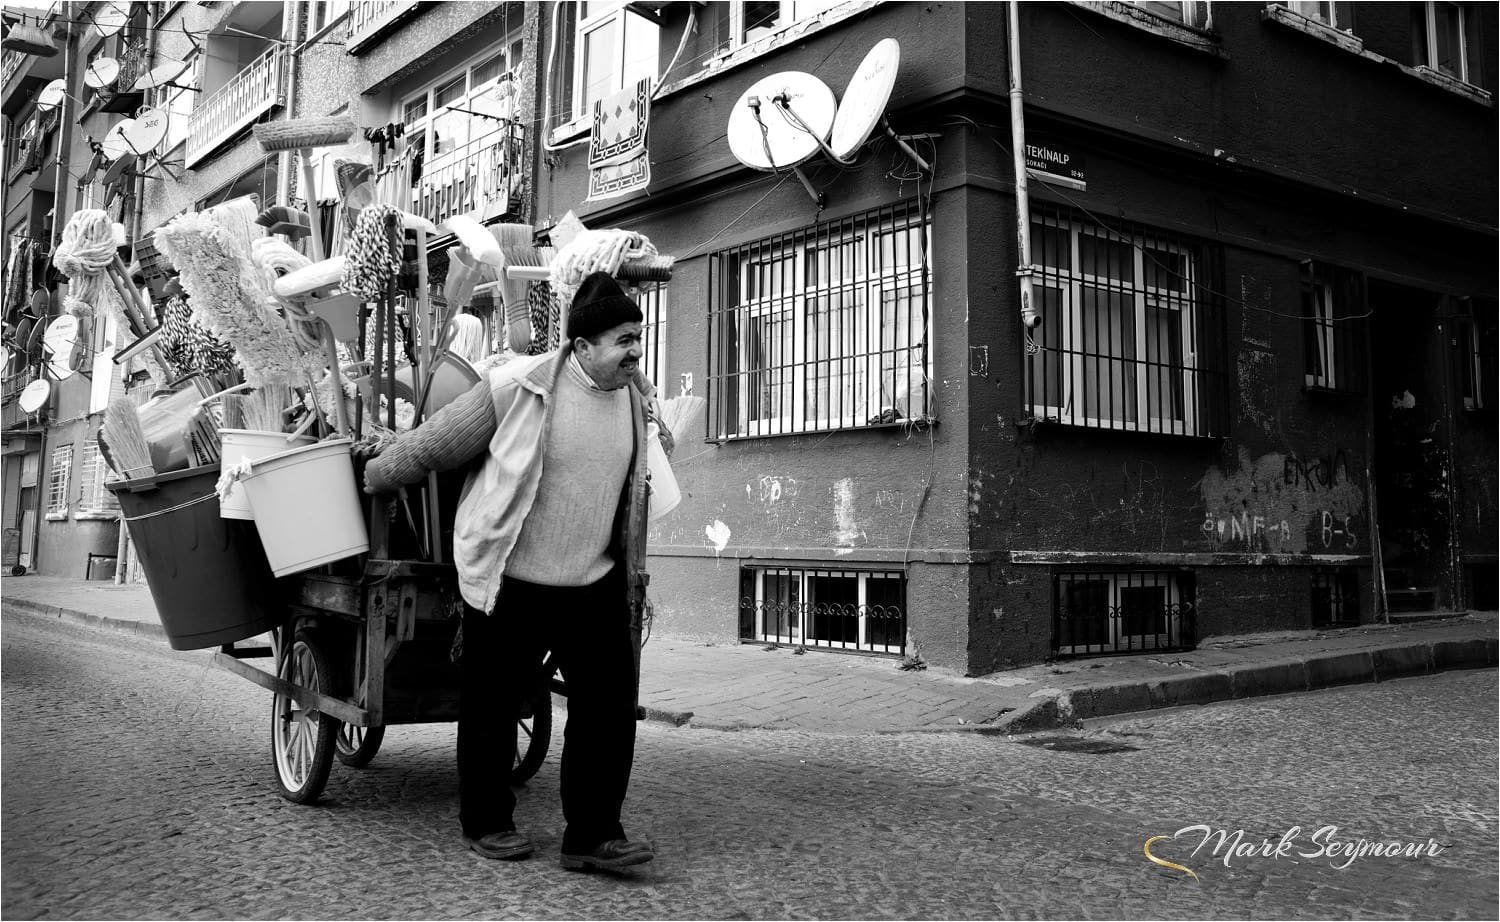 Street trader in Istanbul